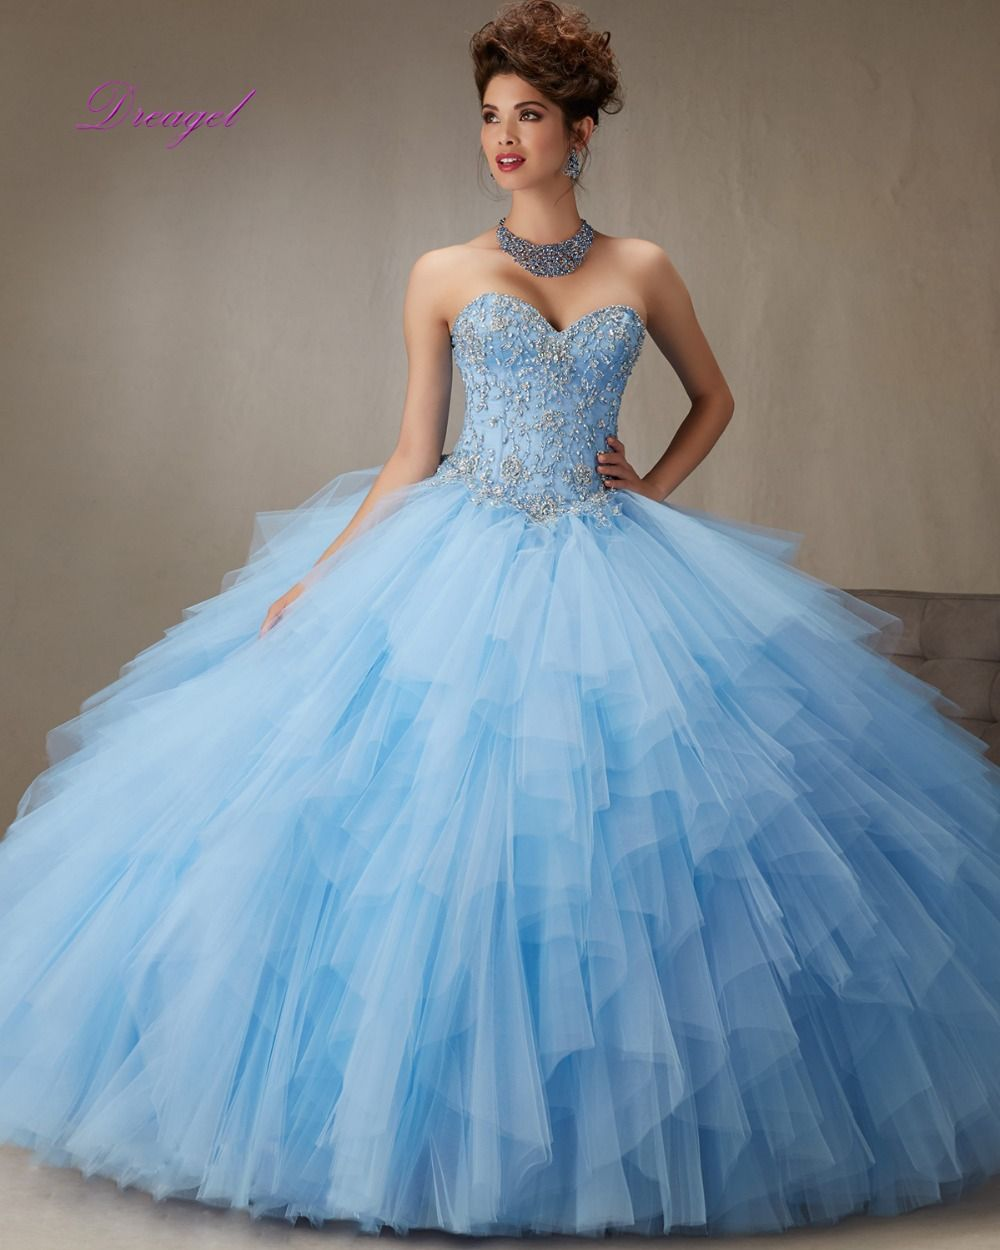 Dreagel High-end Custom Luxury Crystal Sequined Beaded Quinceanera ...